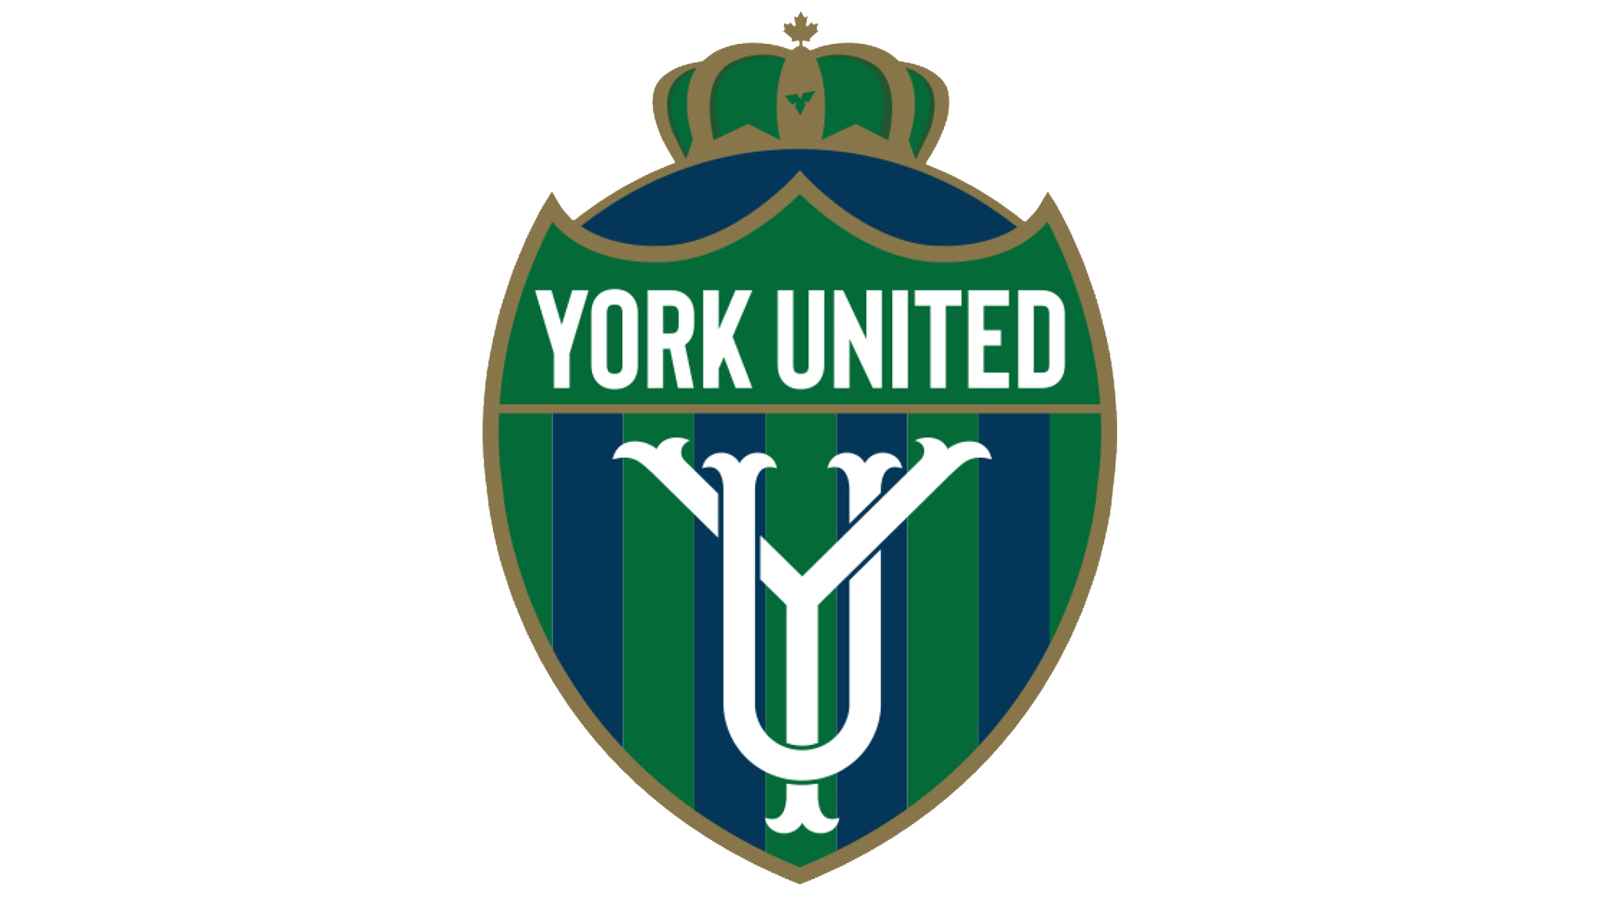 York United FC's new crest.